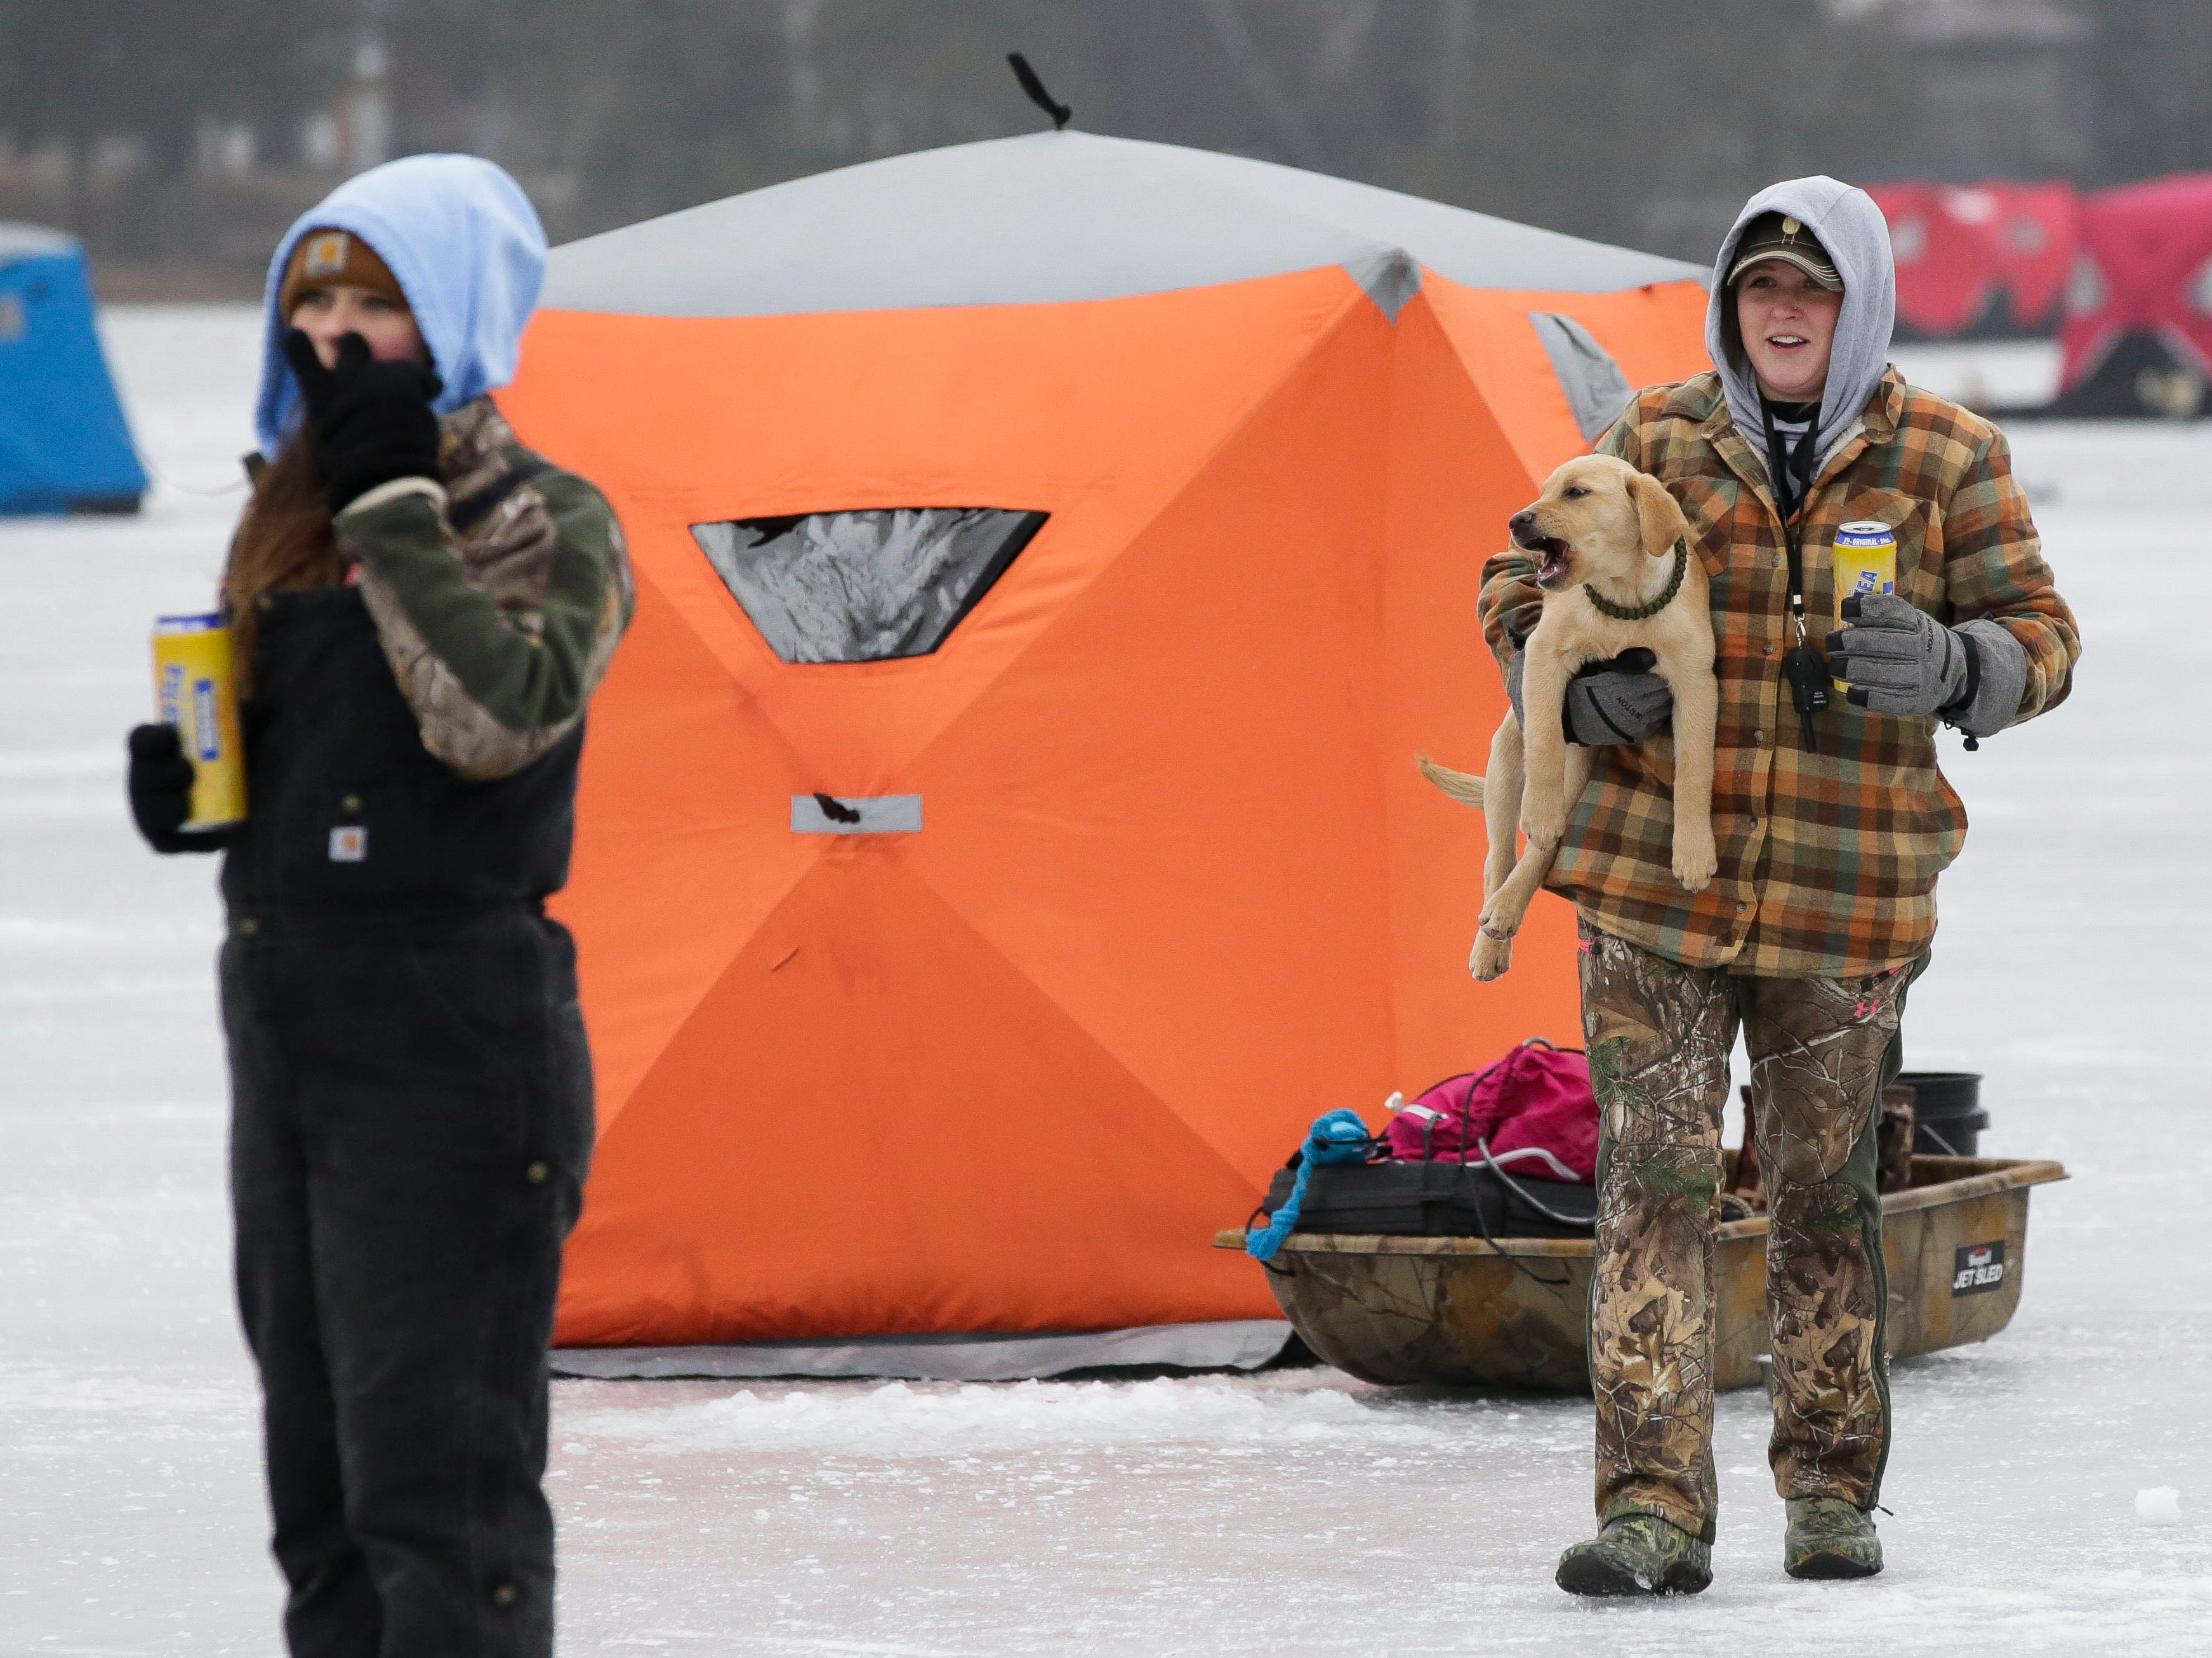 Natalie Widder carries her puppy on Saturday, January 12, 2019, during the Rosholt Blizzard Busters Fisheree at Lake Helen outside Rosholt, Wis.Tork Mason/USA TODAY NETWORK-Wisconsin